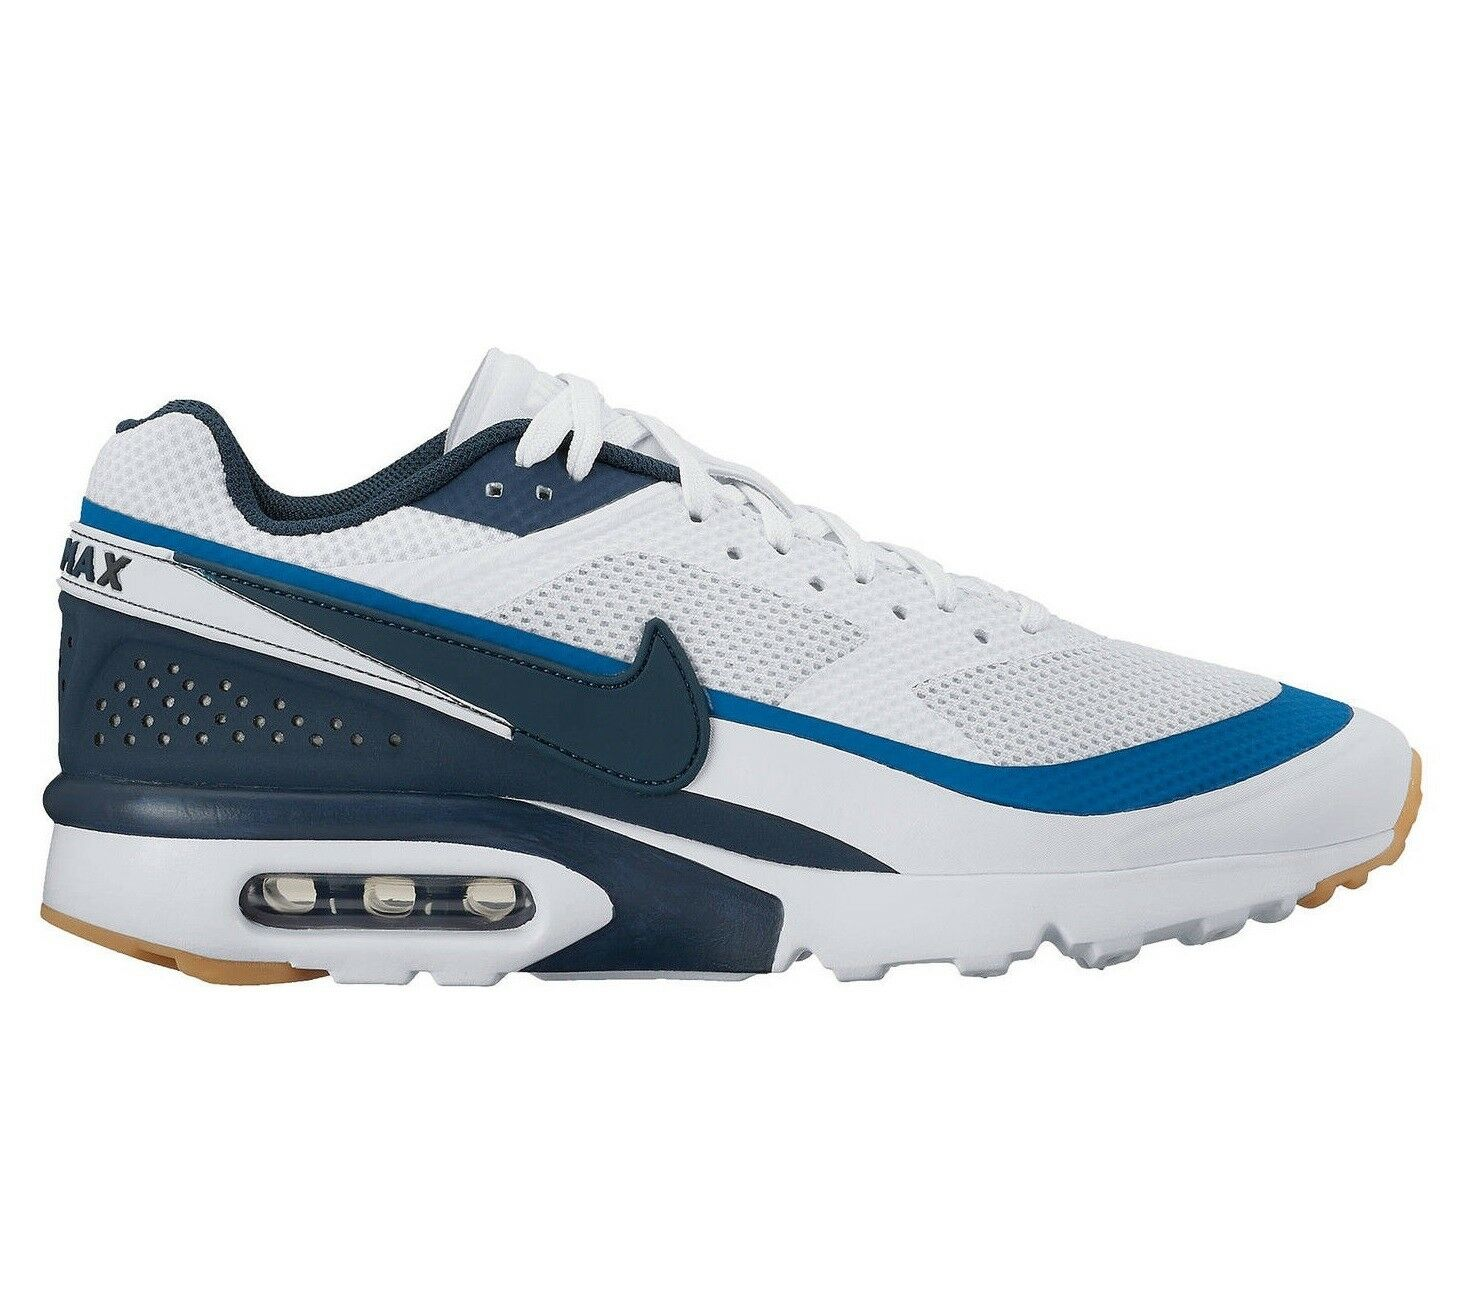 Nike Mens Air Max BW Ultra Mens Nike 819475-100 White Armory Navy Running Shoes Size 10.5 789cb6